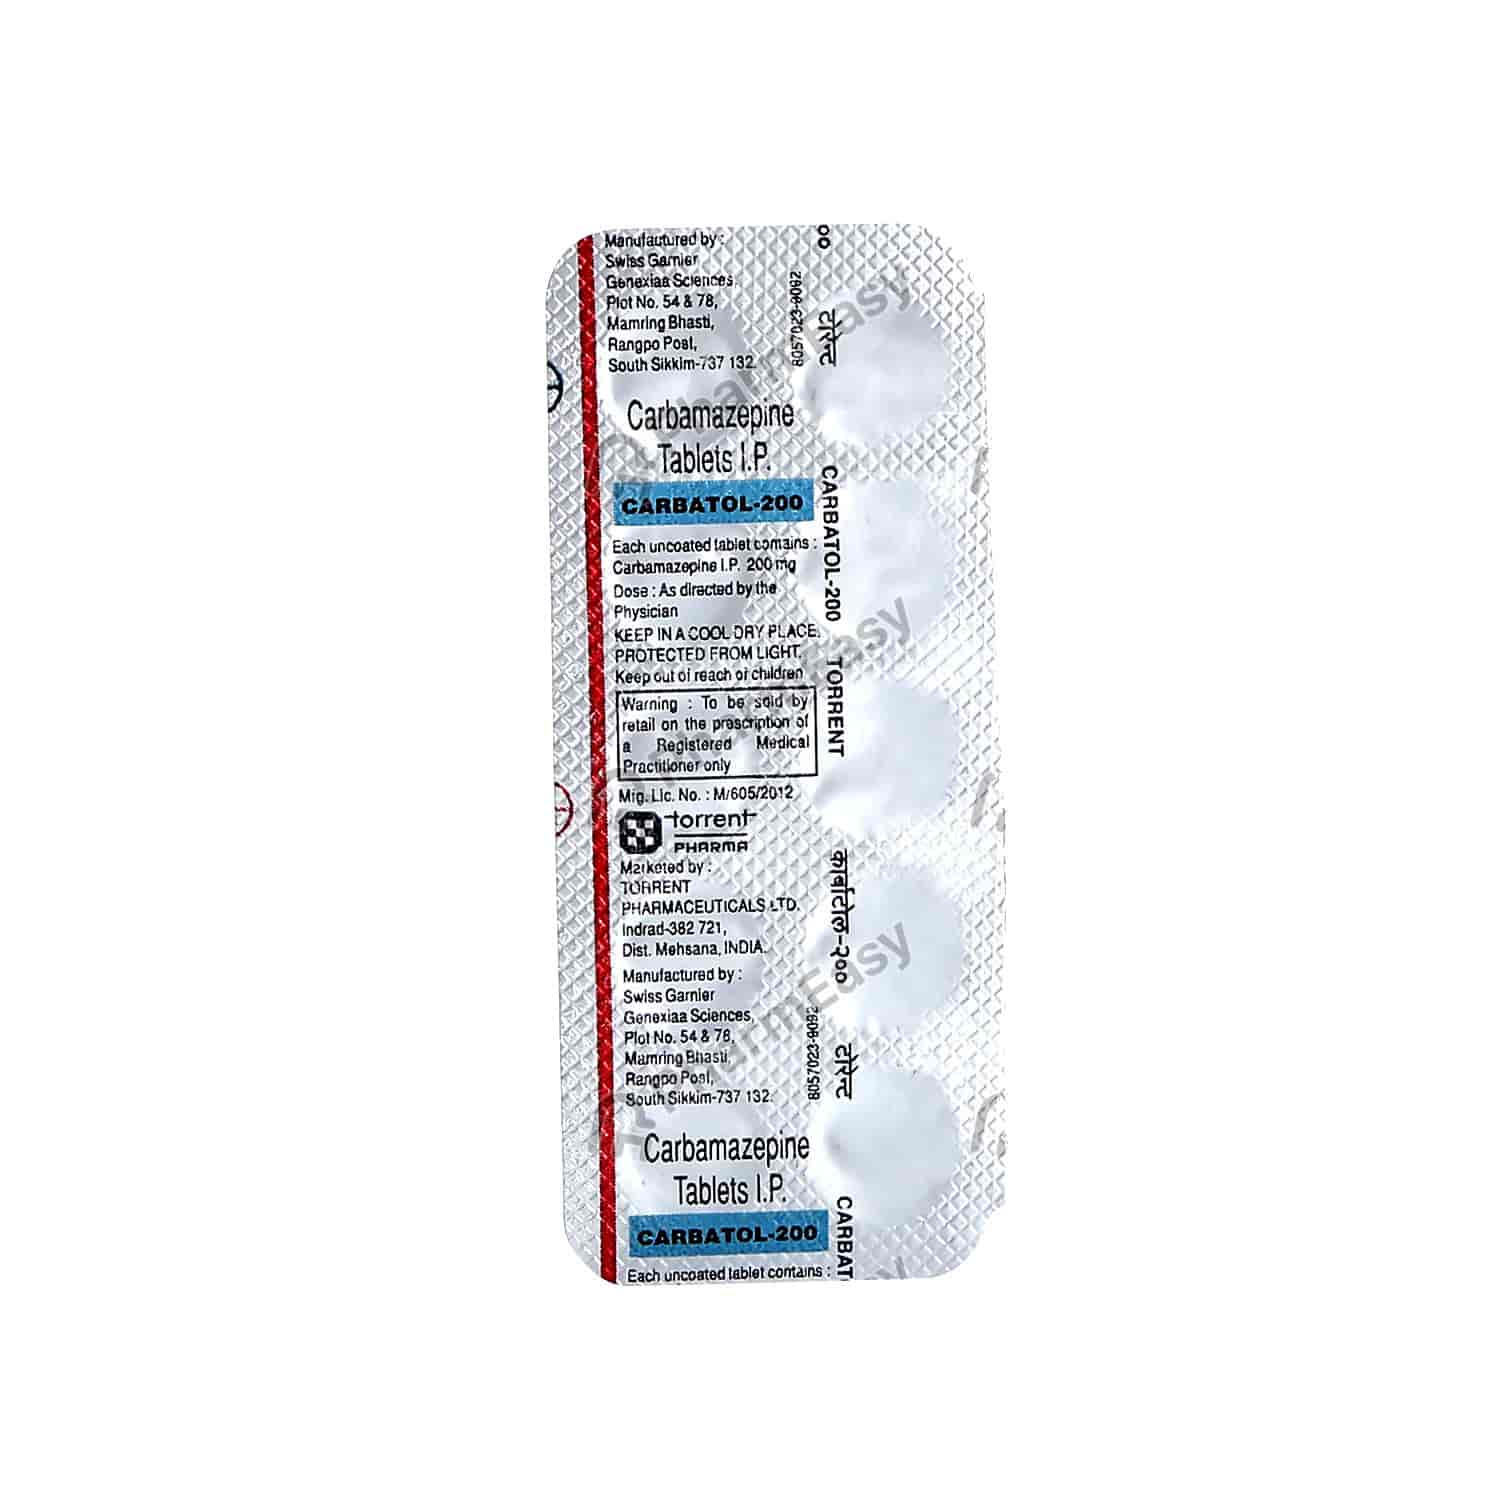 Carbatol 200mg Tablet